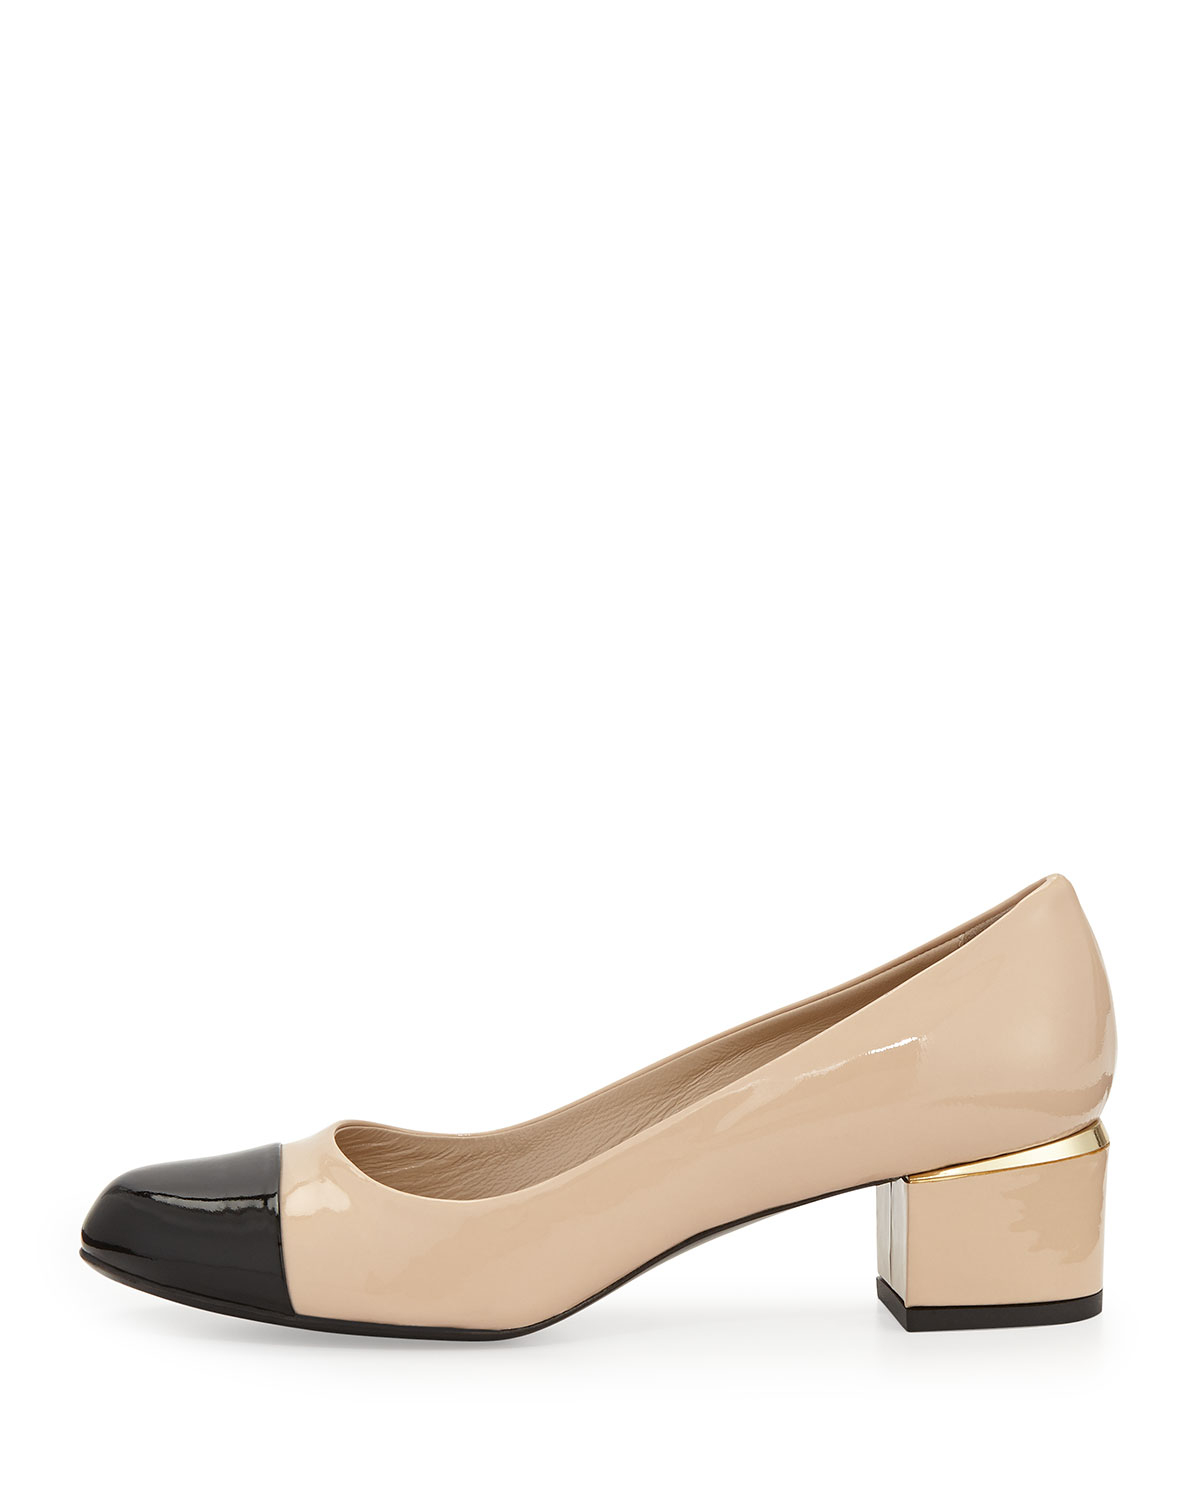 d1ef9989e64 Lyst - Delman Livia Cap-Toe Block Leather Pump in Natural